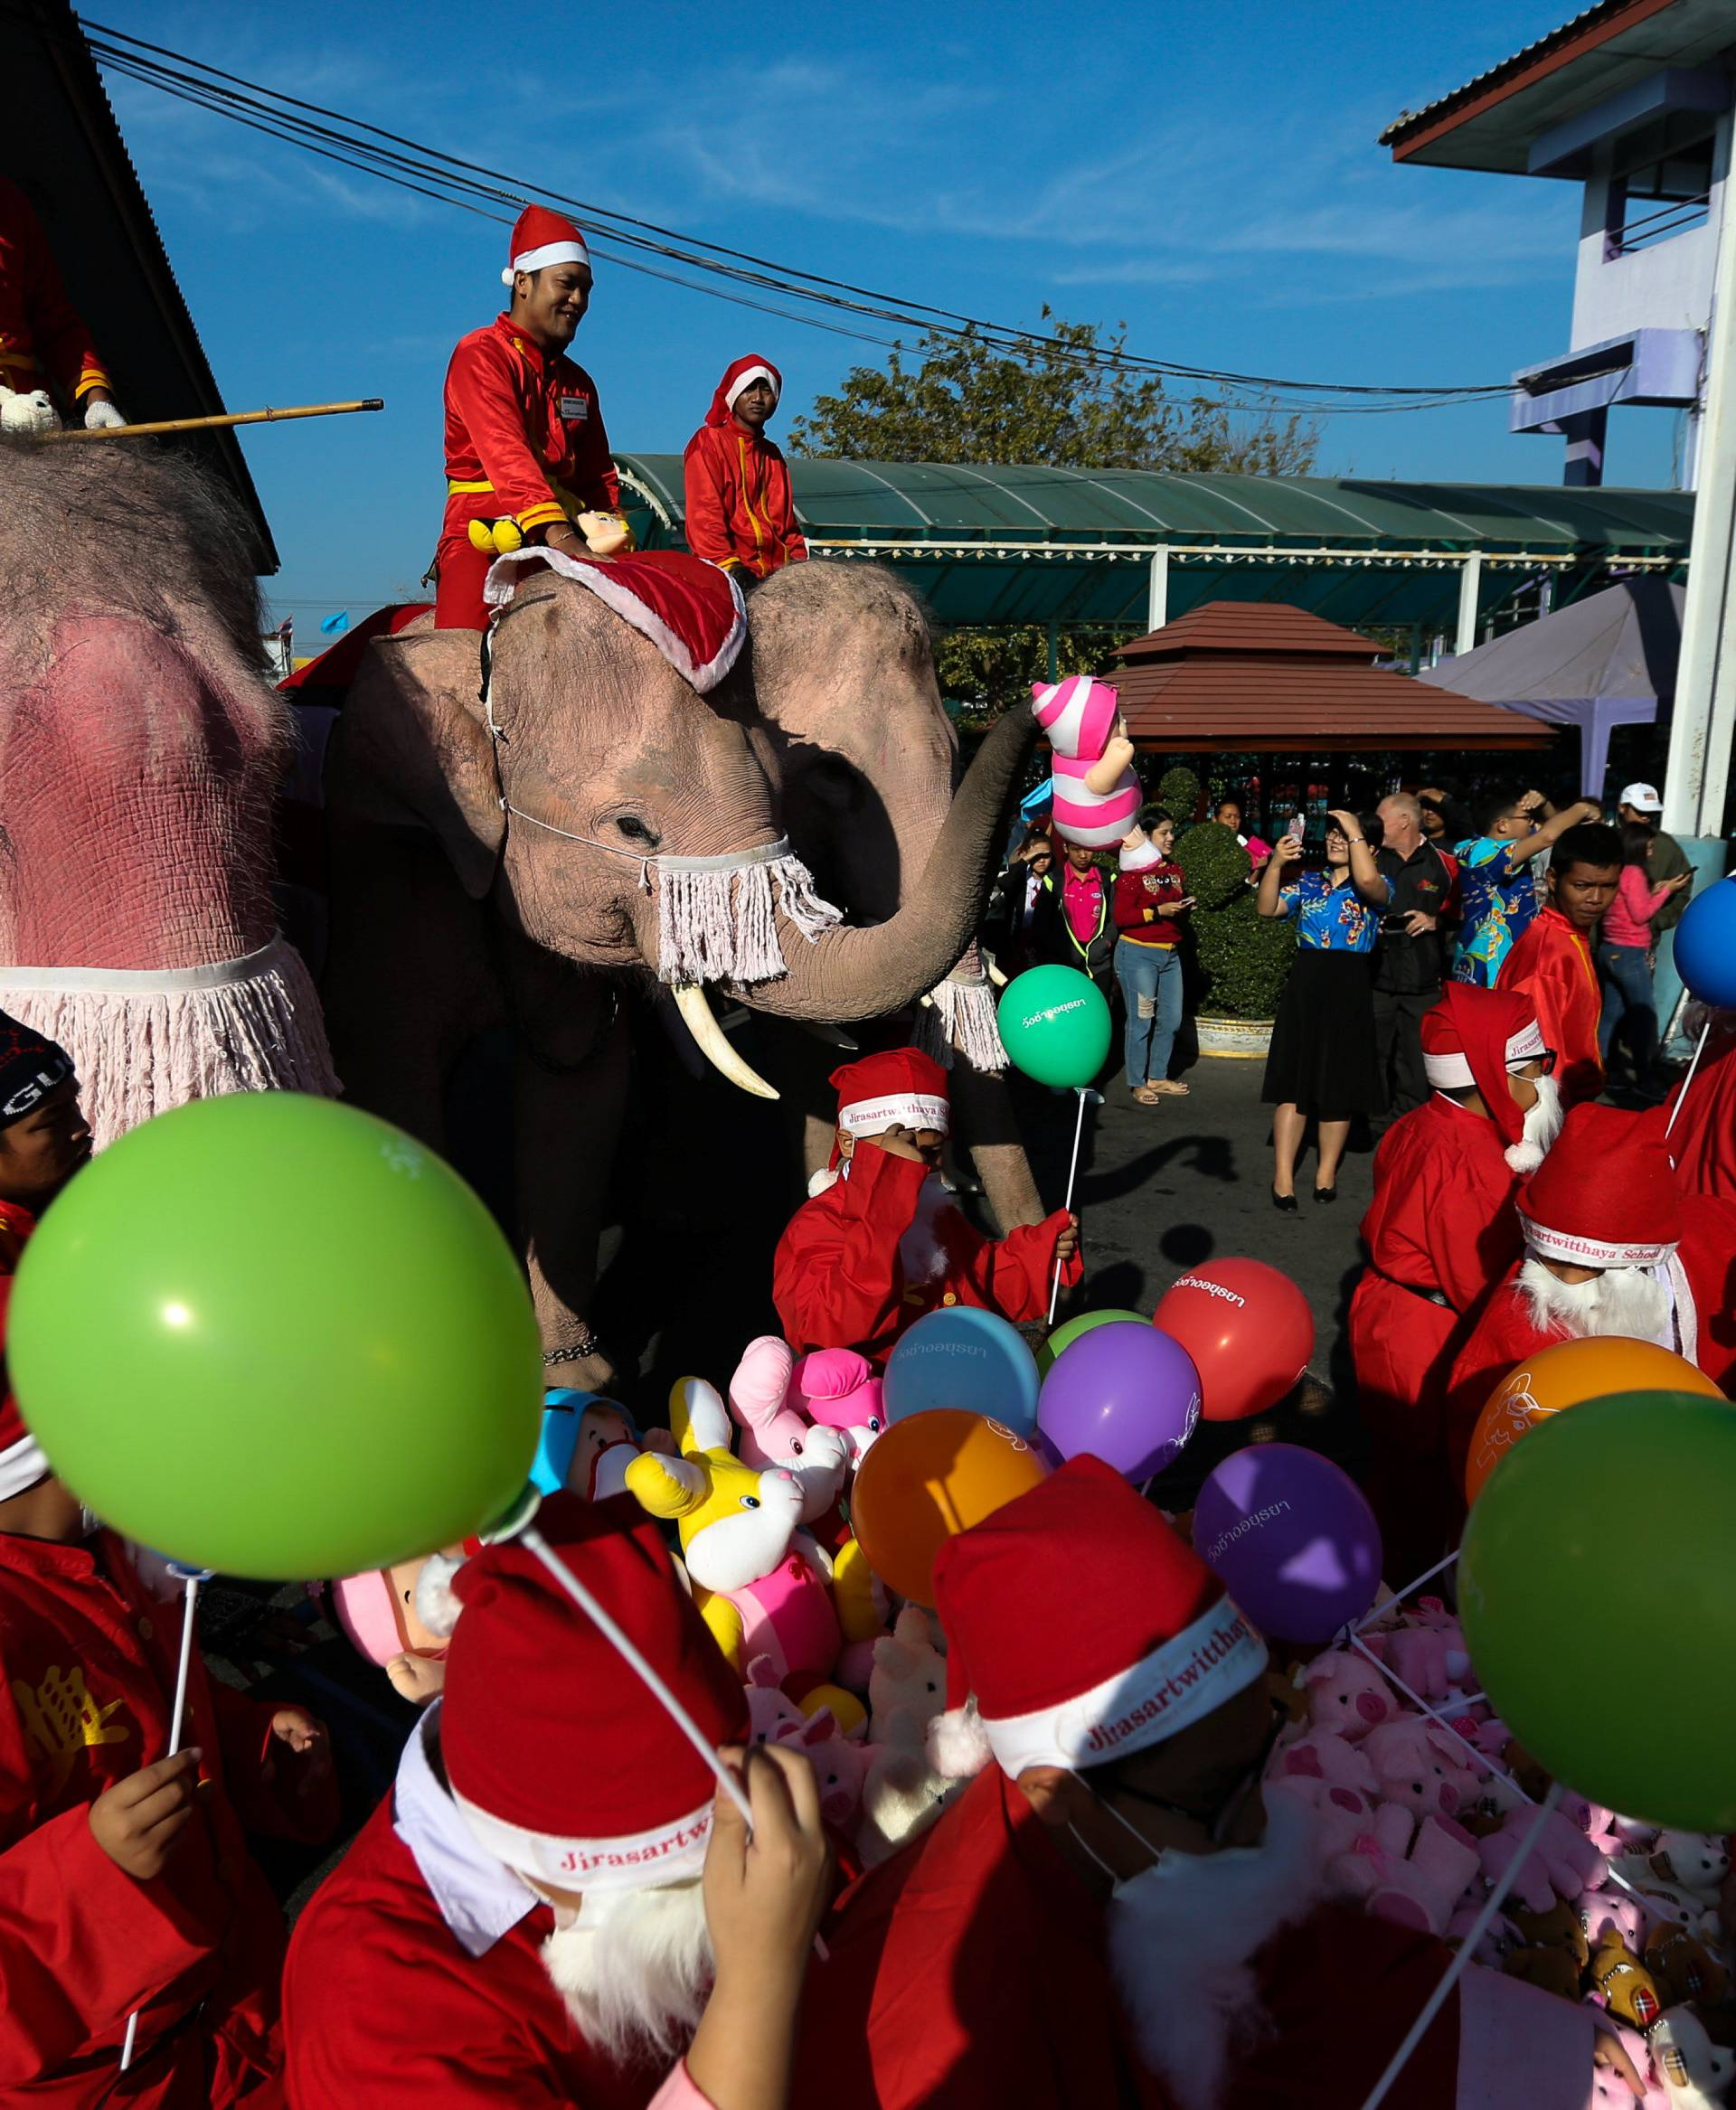 Elephants, teachers and students dressed in Santa Claus costumes parade during Christmas celebrations at Jirasart school in Ayutthaya